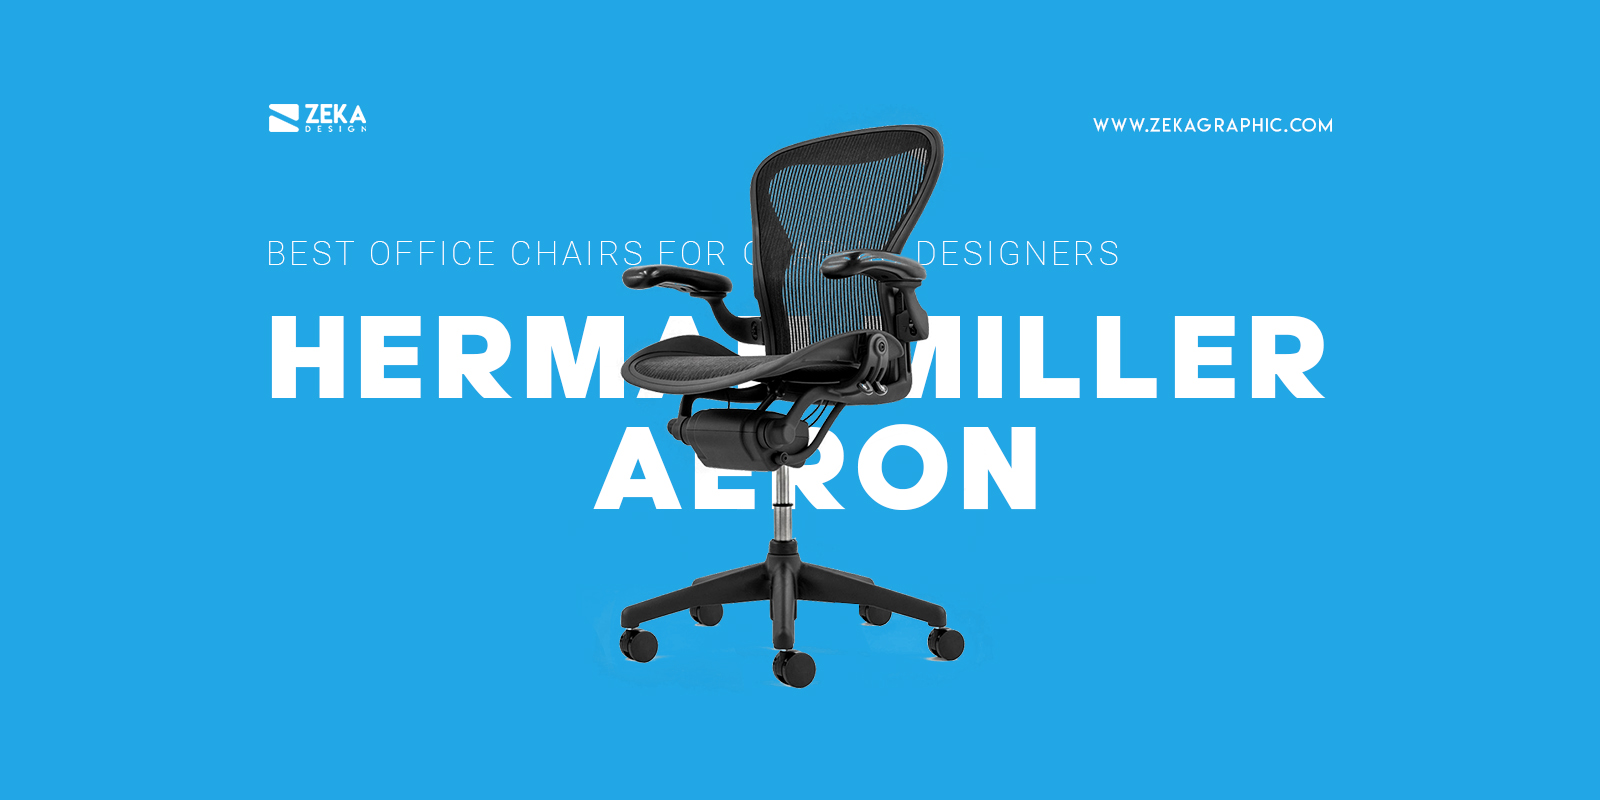 Herman Miller Aeron Best Office Chair for Graphic Designers